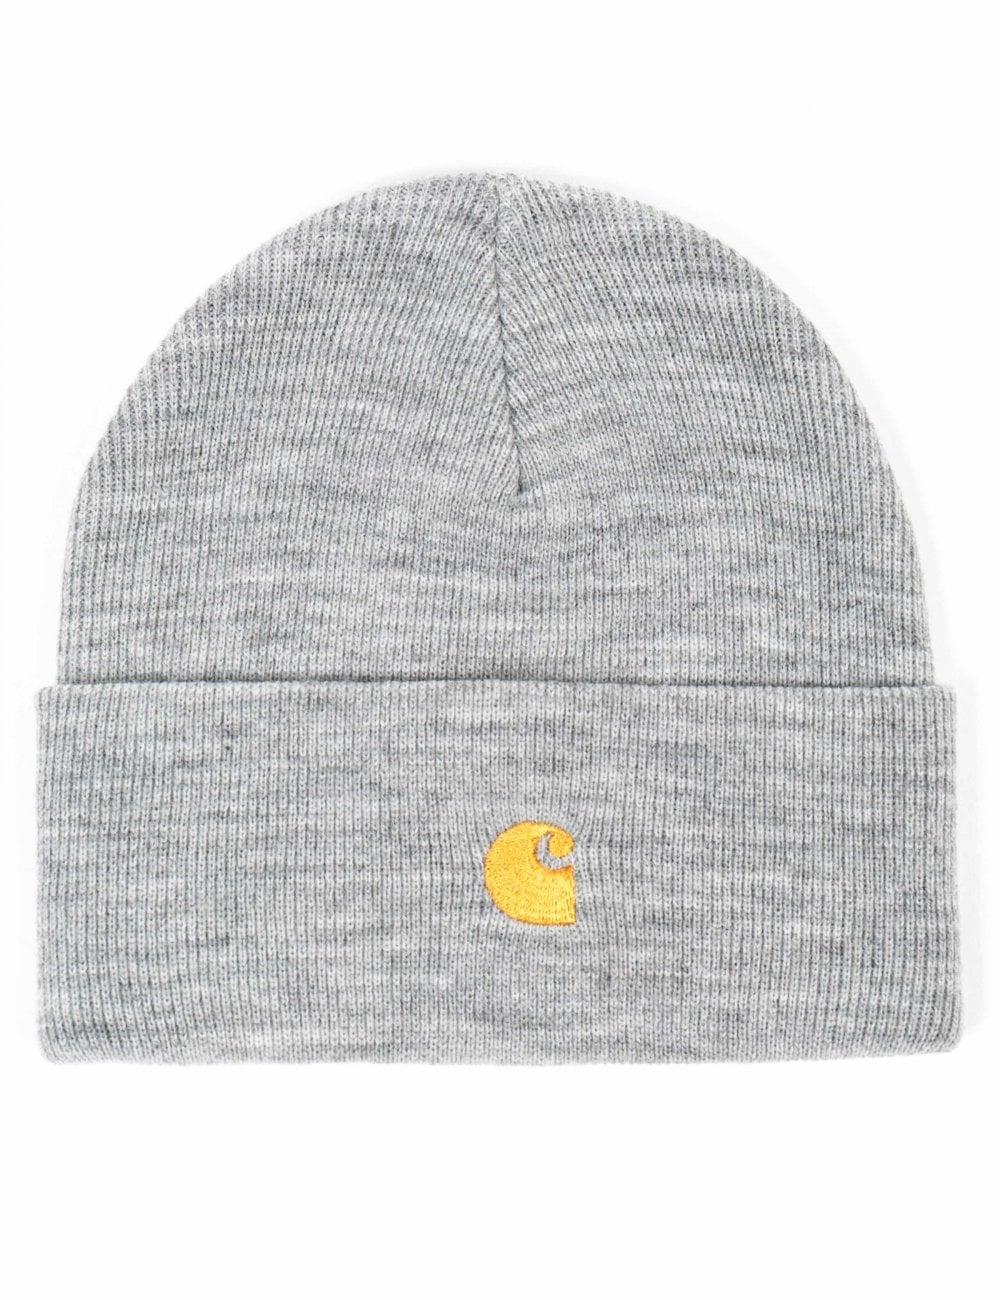 08e2a384d8df5 Carhartt WIP Chase Beanie Hat - Grey Heather - Accessories from Fat ...